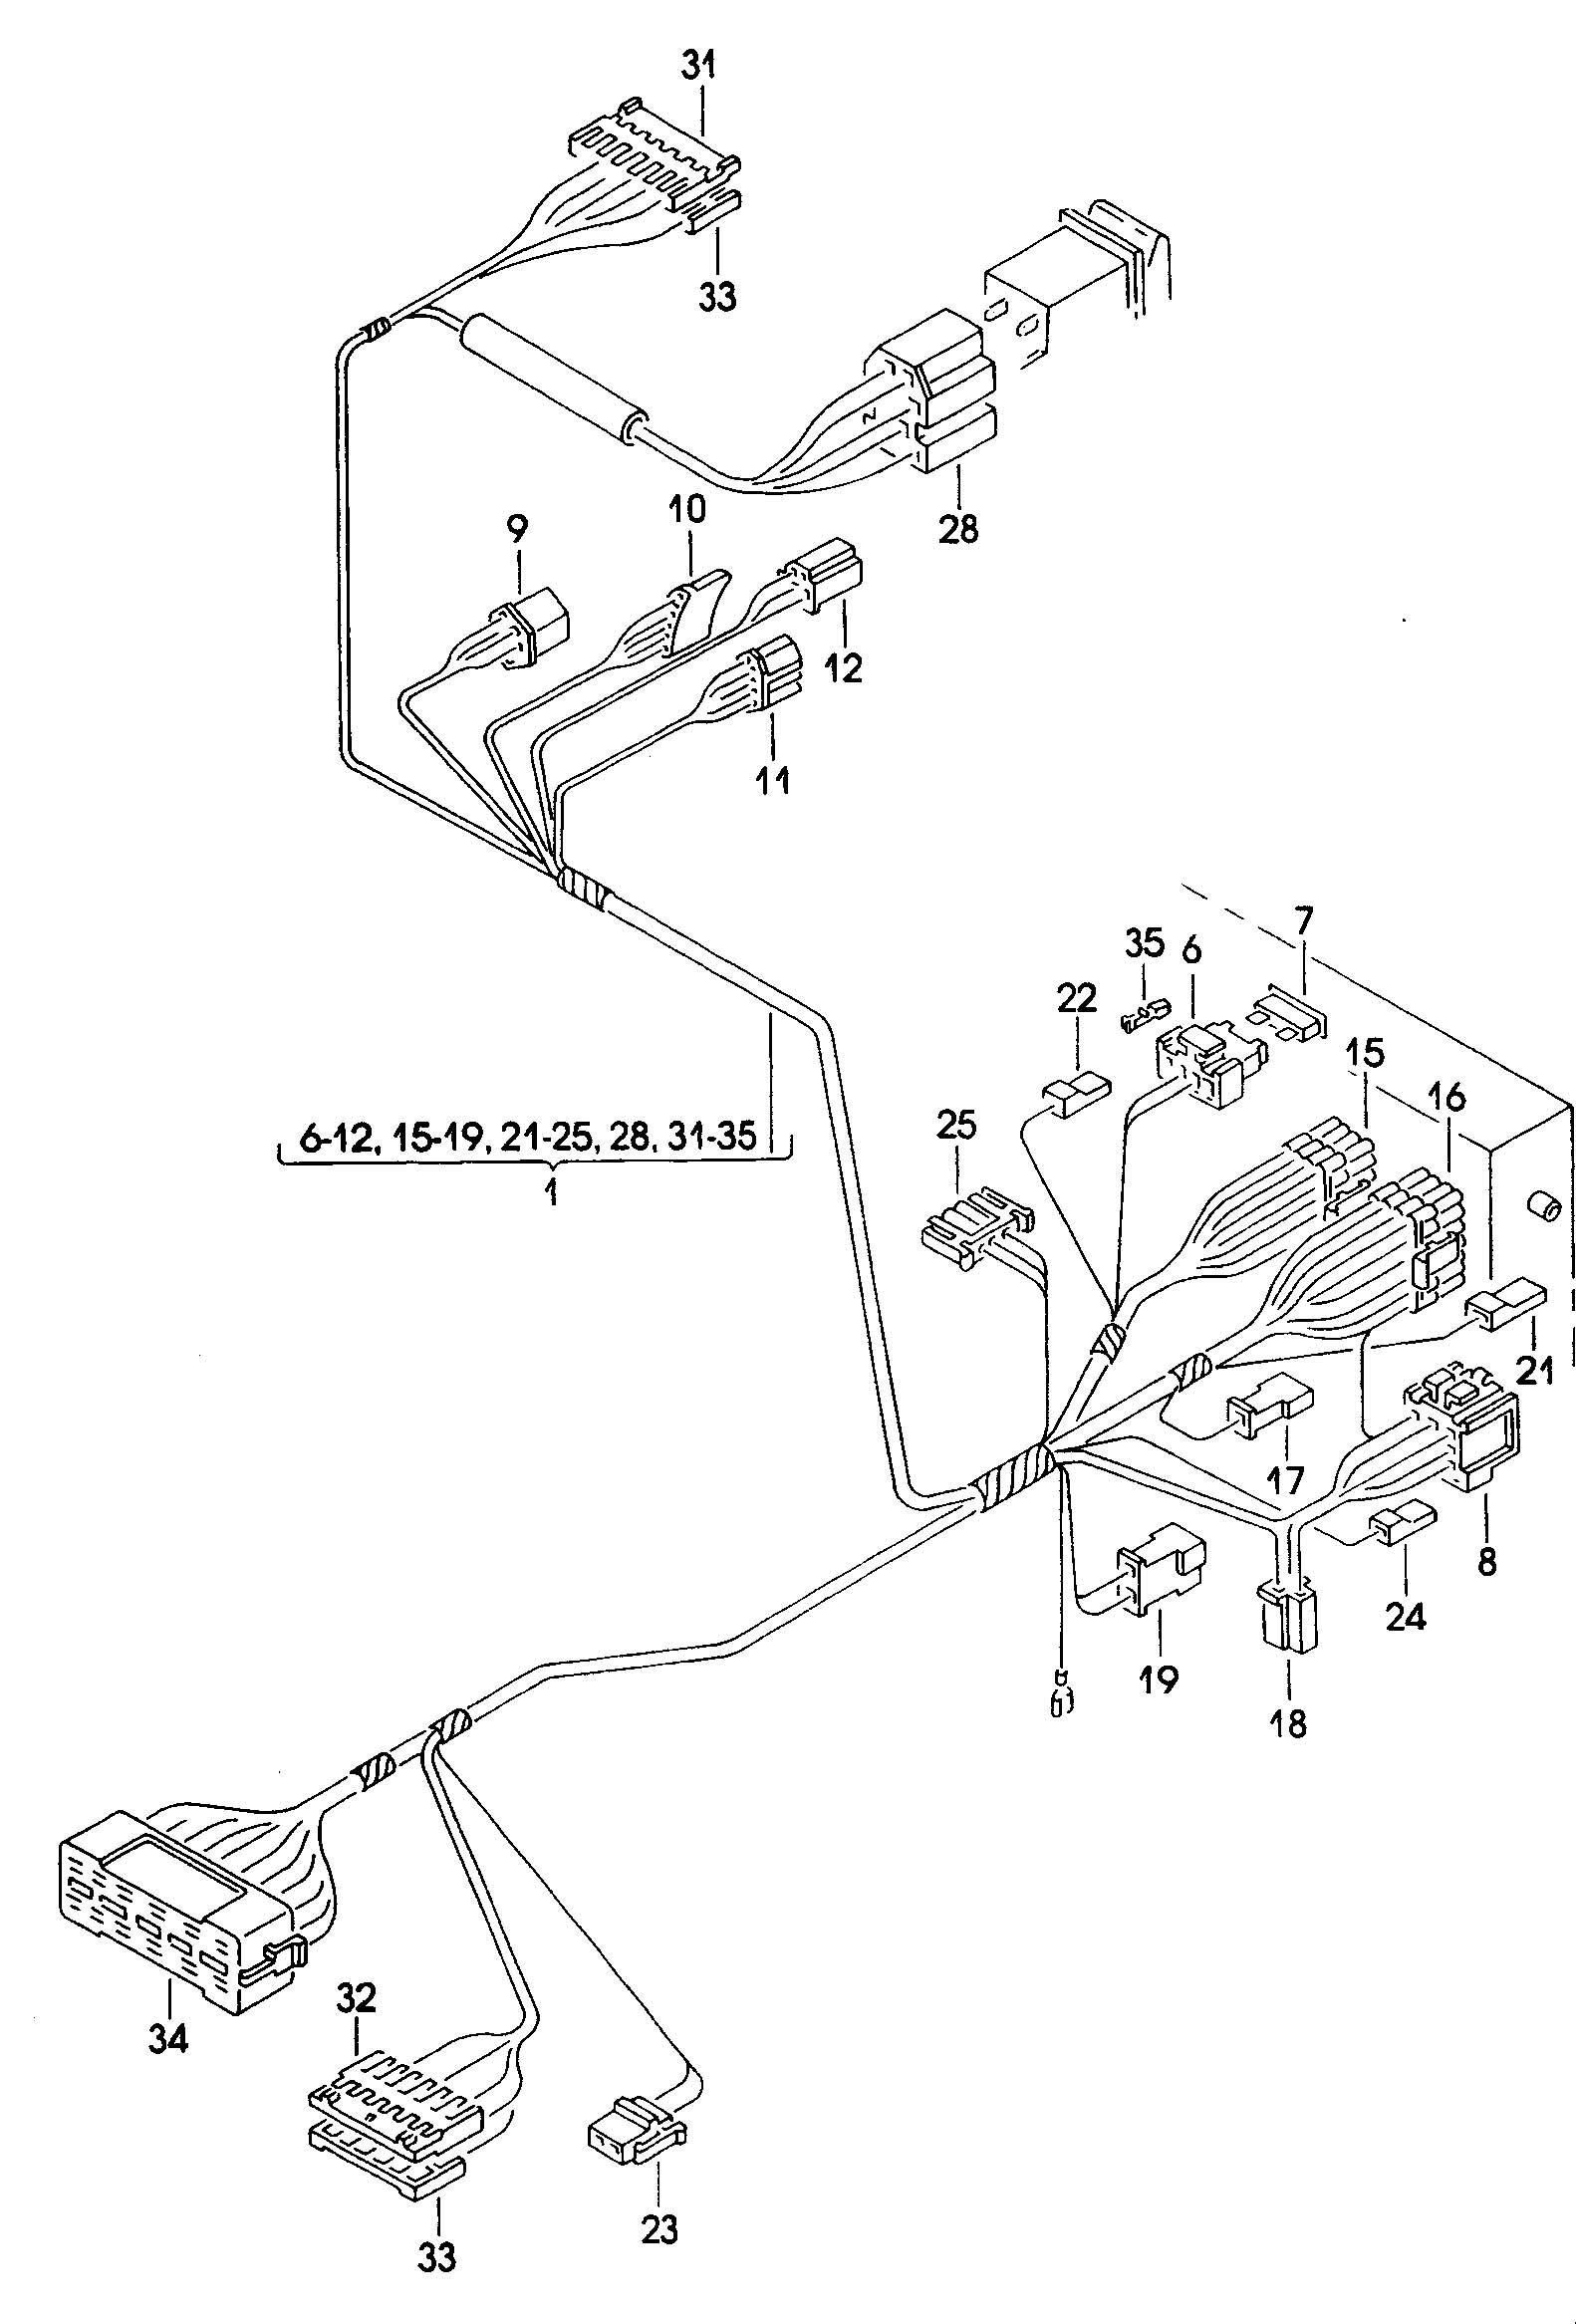 2002 vw jetta emission fuse box diagram